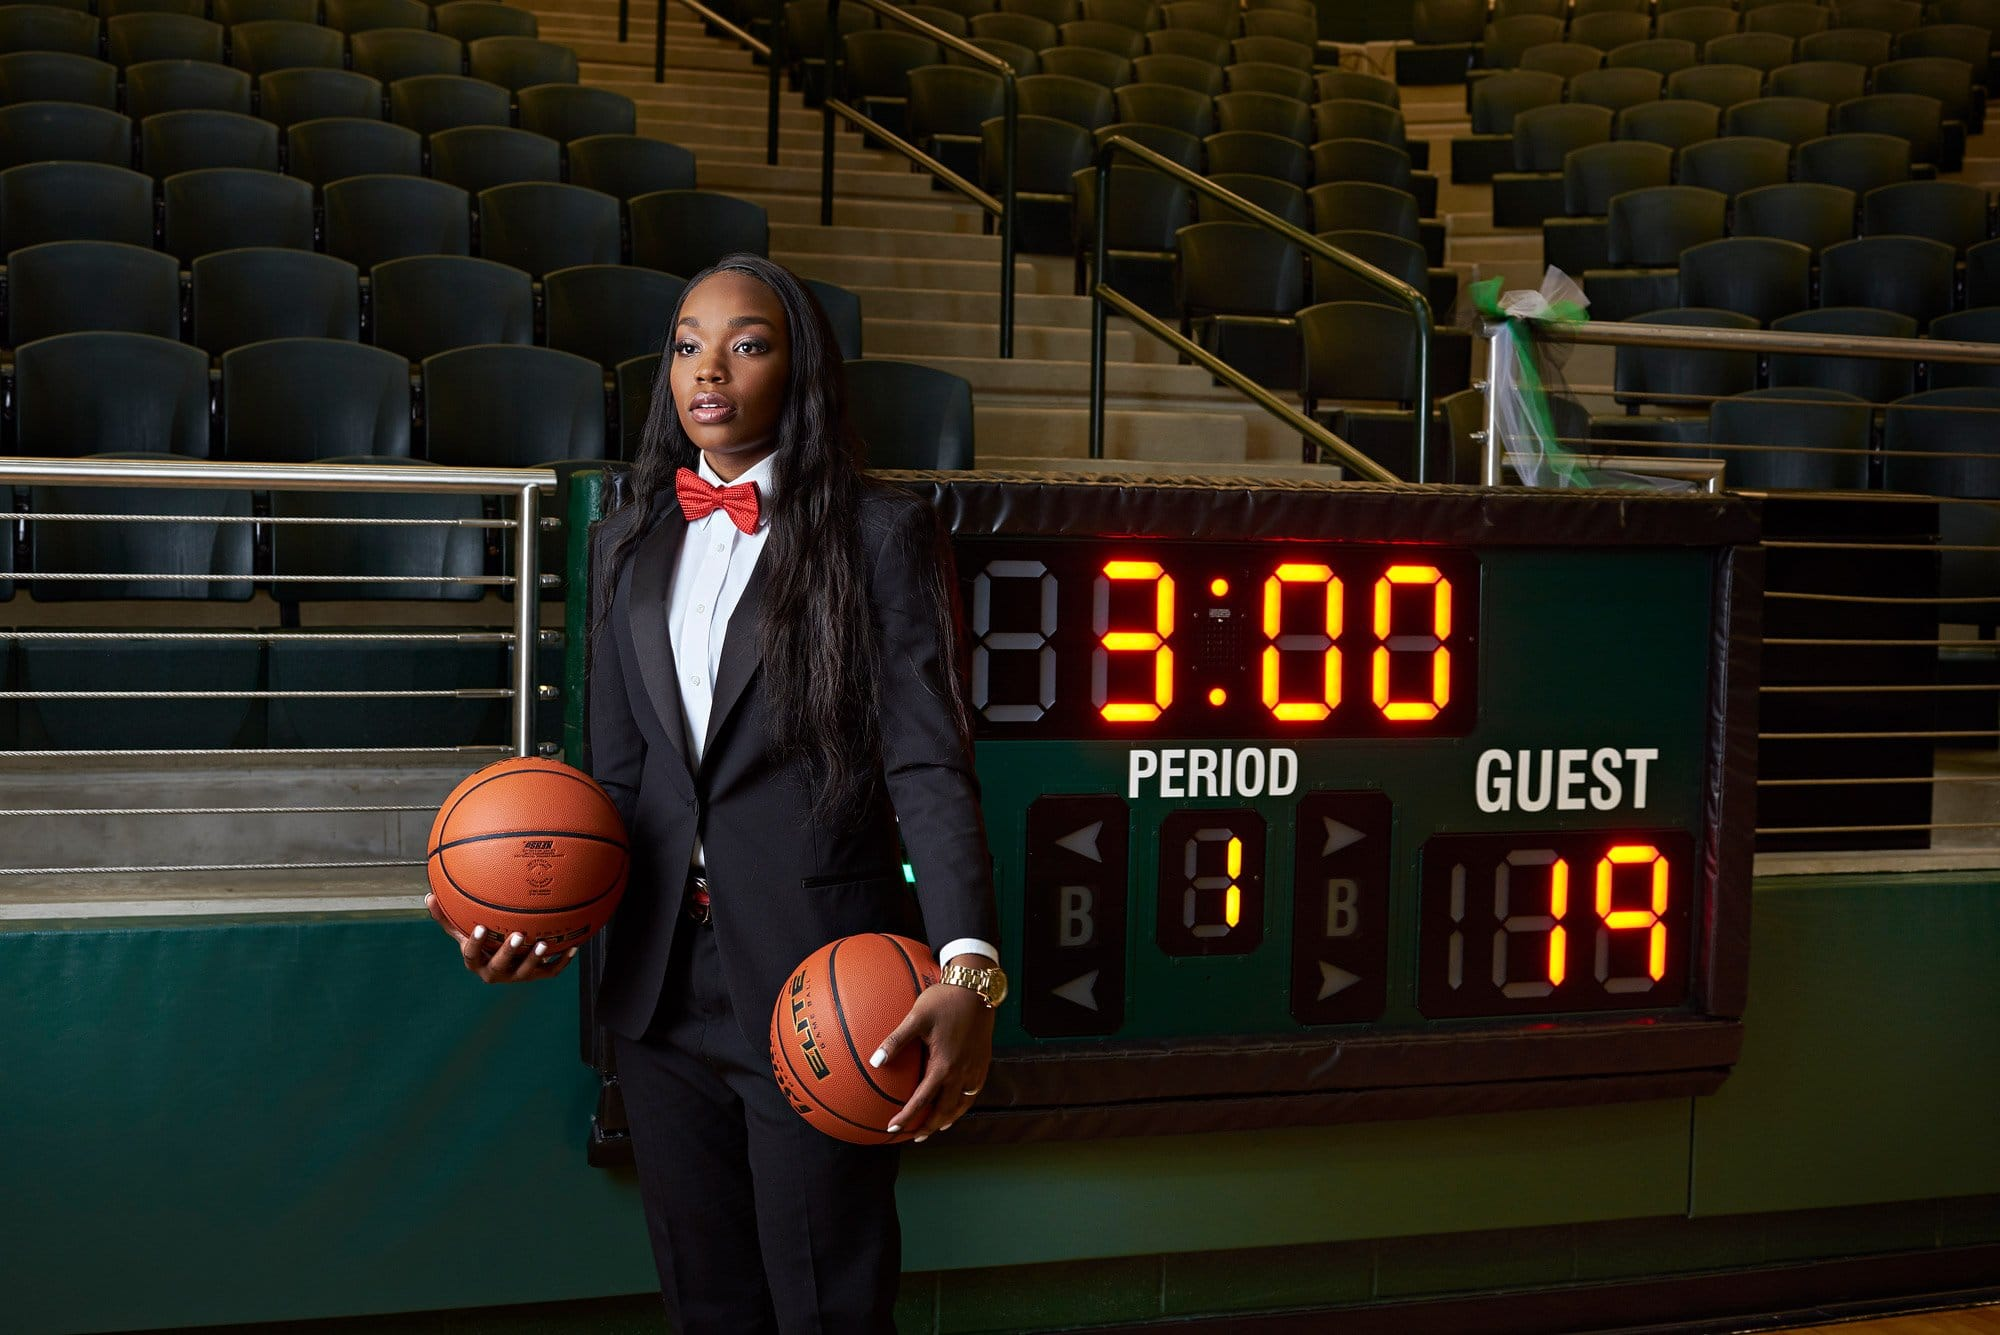 Jordyn Oliver stands by the scoreboard for senior portraits at the Prosper high school arena